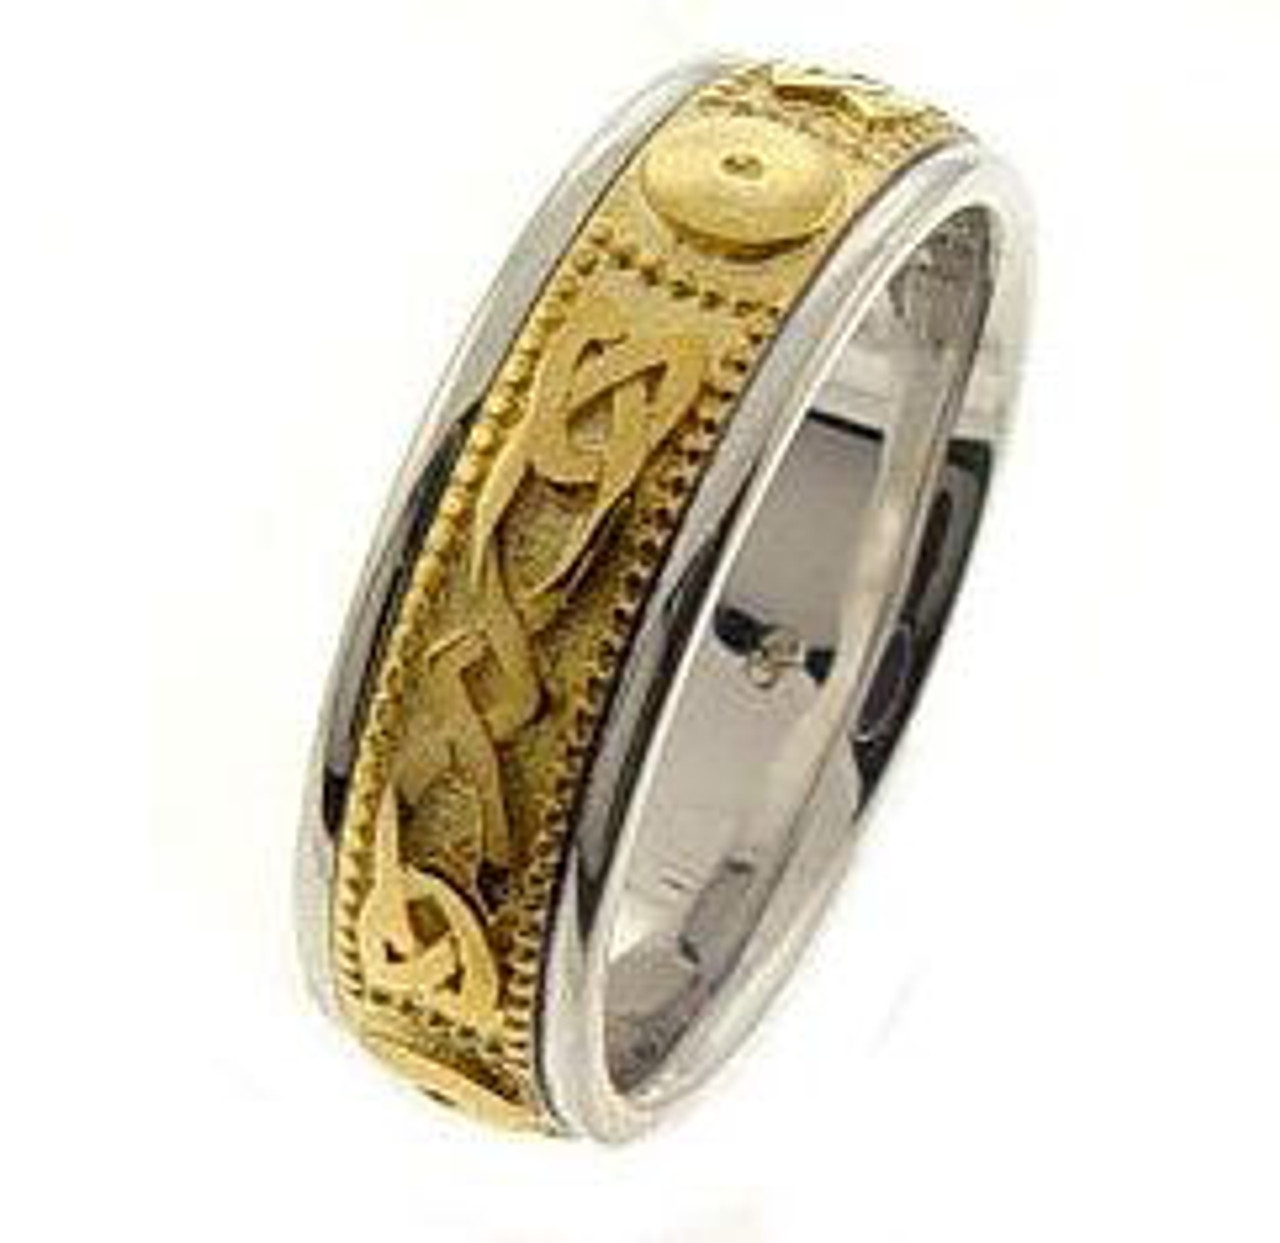 Celtic Knot Wedding Bands.Two Tone Gold Celtic Knot Comfort Fit Wedding Band